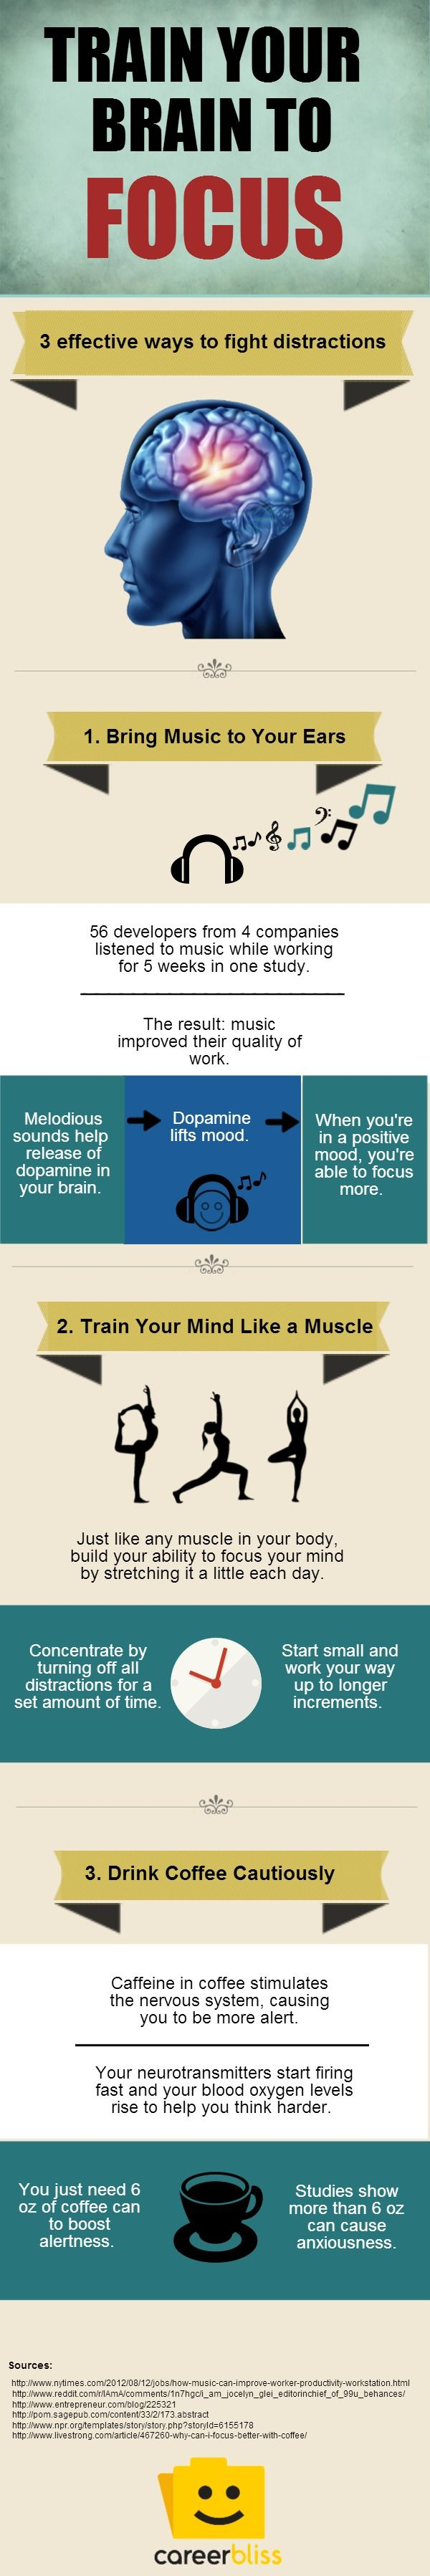 3 Ways to Train Your Brain to Focus [INFOGRAPHIC] #alzheimers #tgen #mindcrowd www.mindcrowd.org